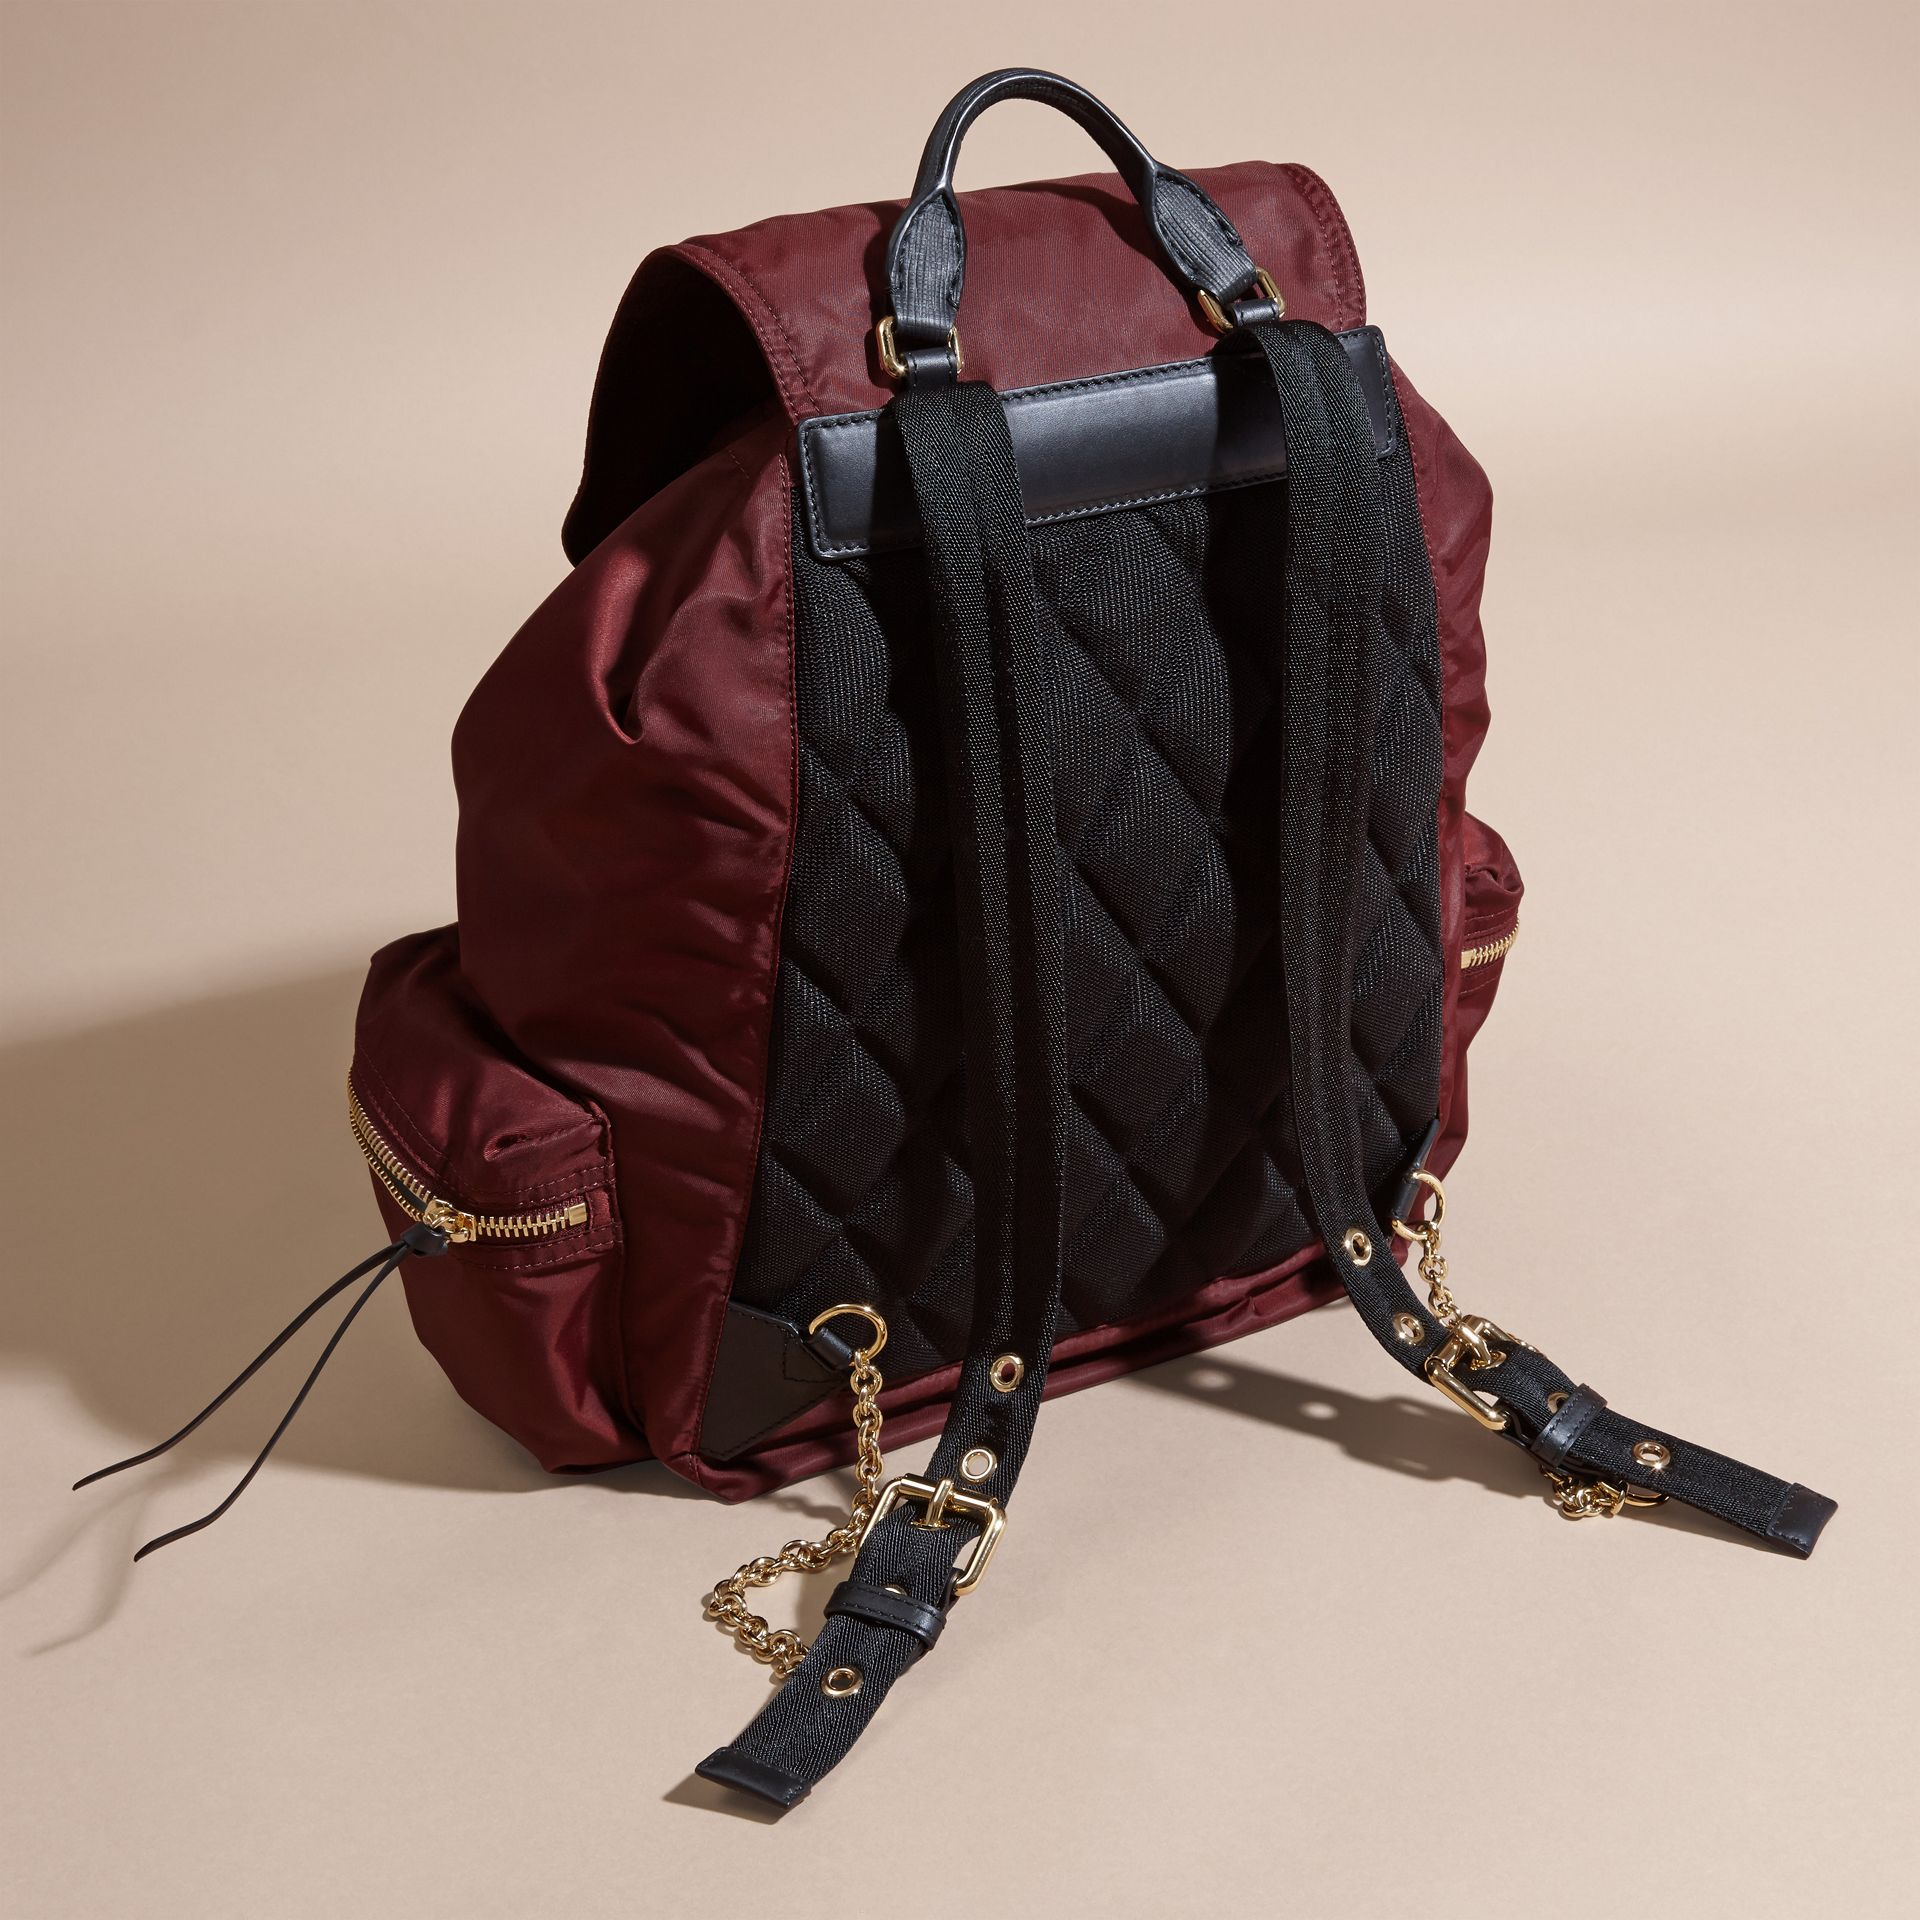 Burgundy red The Large Rucksack in Technical Nylon and Leather Burgundy Red - gallery image 4